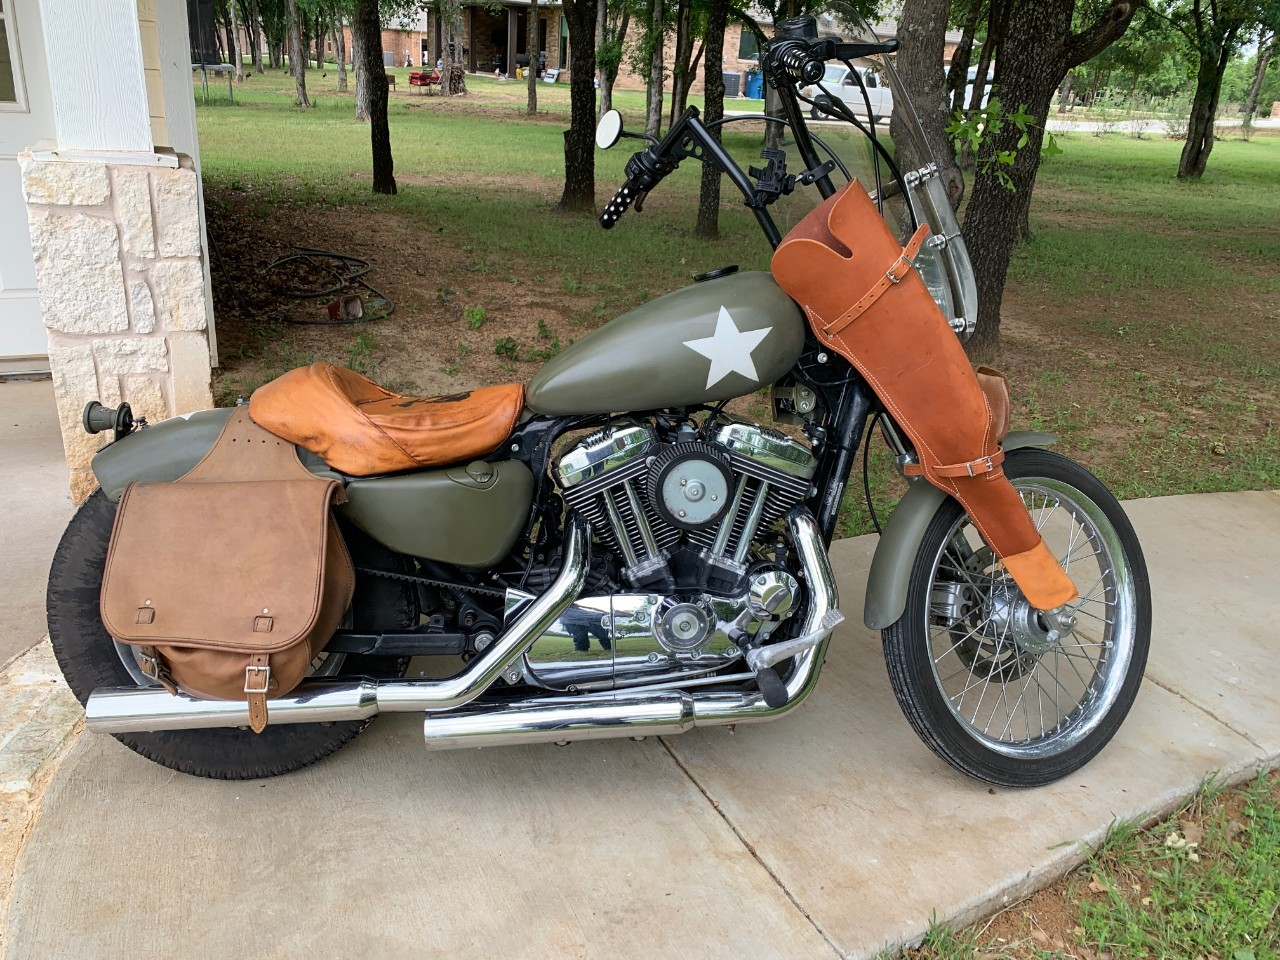 Texas - Classic 1956-1982 Motorcycles For Sale - Cycle Trader